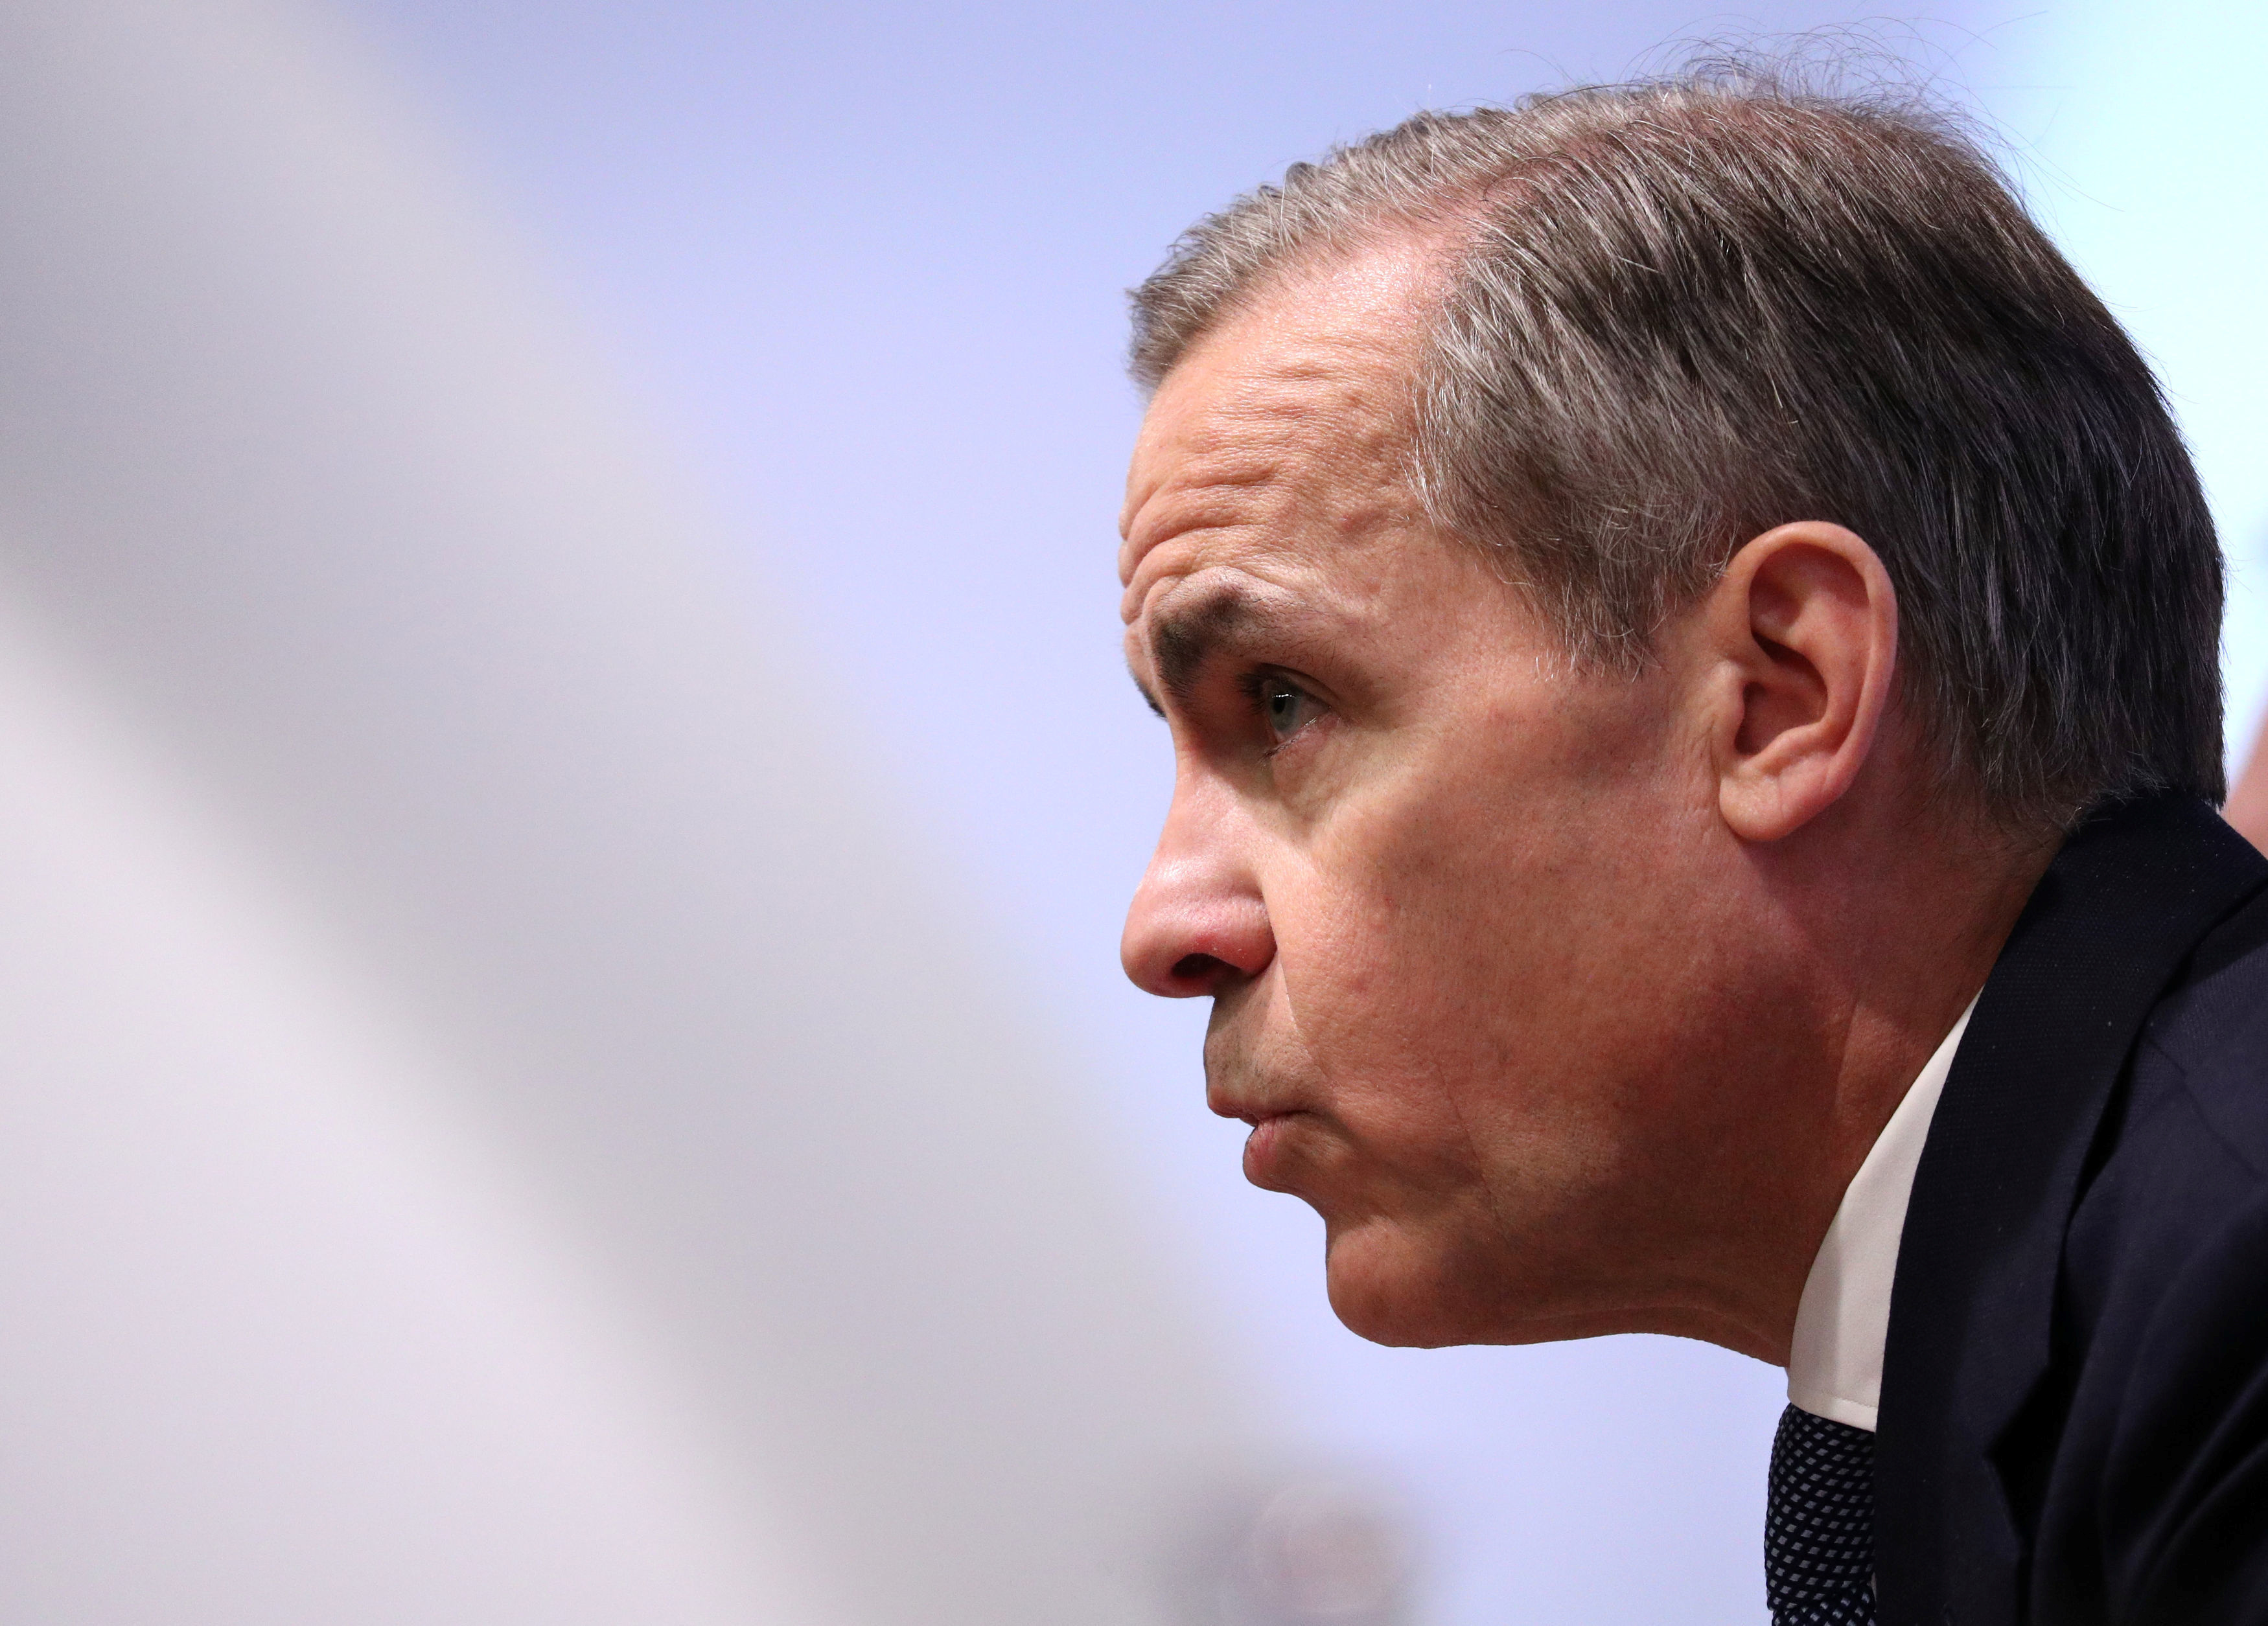 Governor Mark Carney during the Bank of England's Monetary Policy Report news conference in the City of London, Britain January 30, 2020. Jonathan Brady/Pool via REUTERS